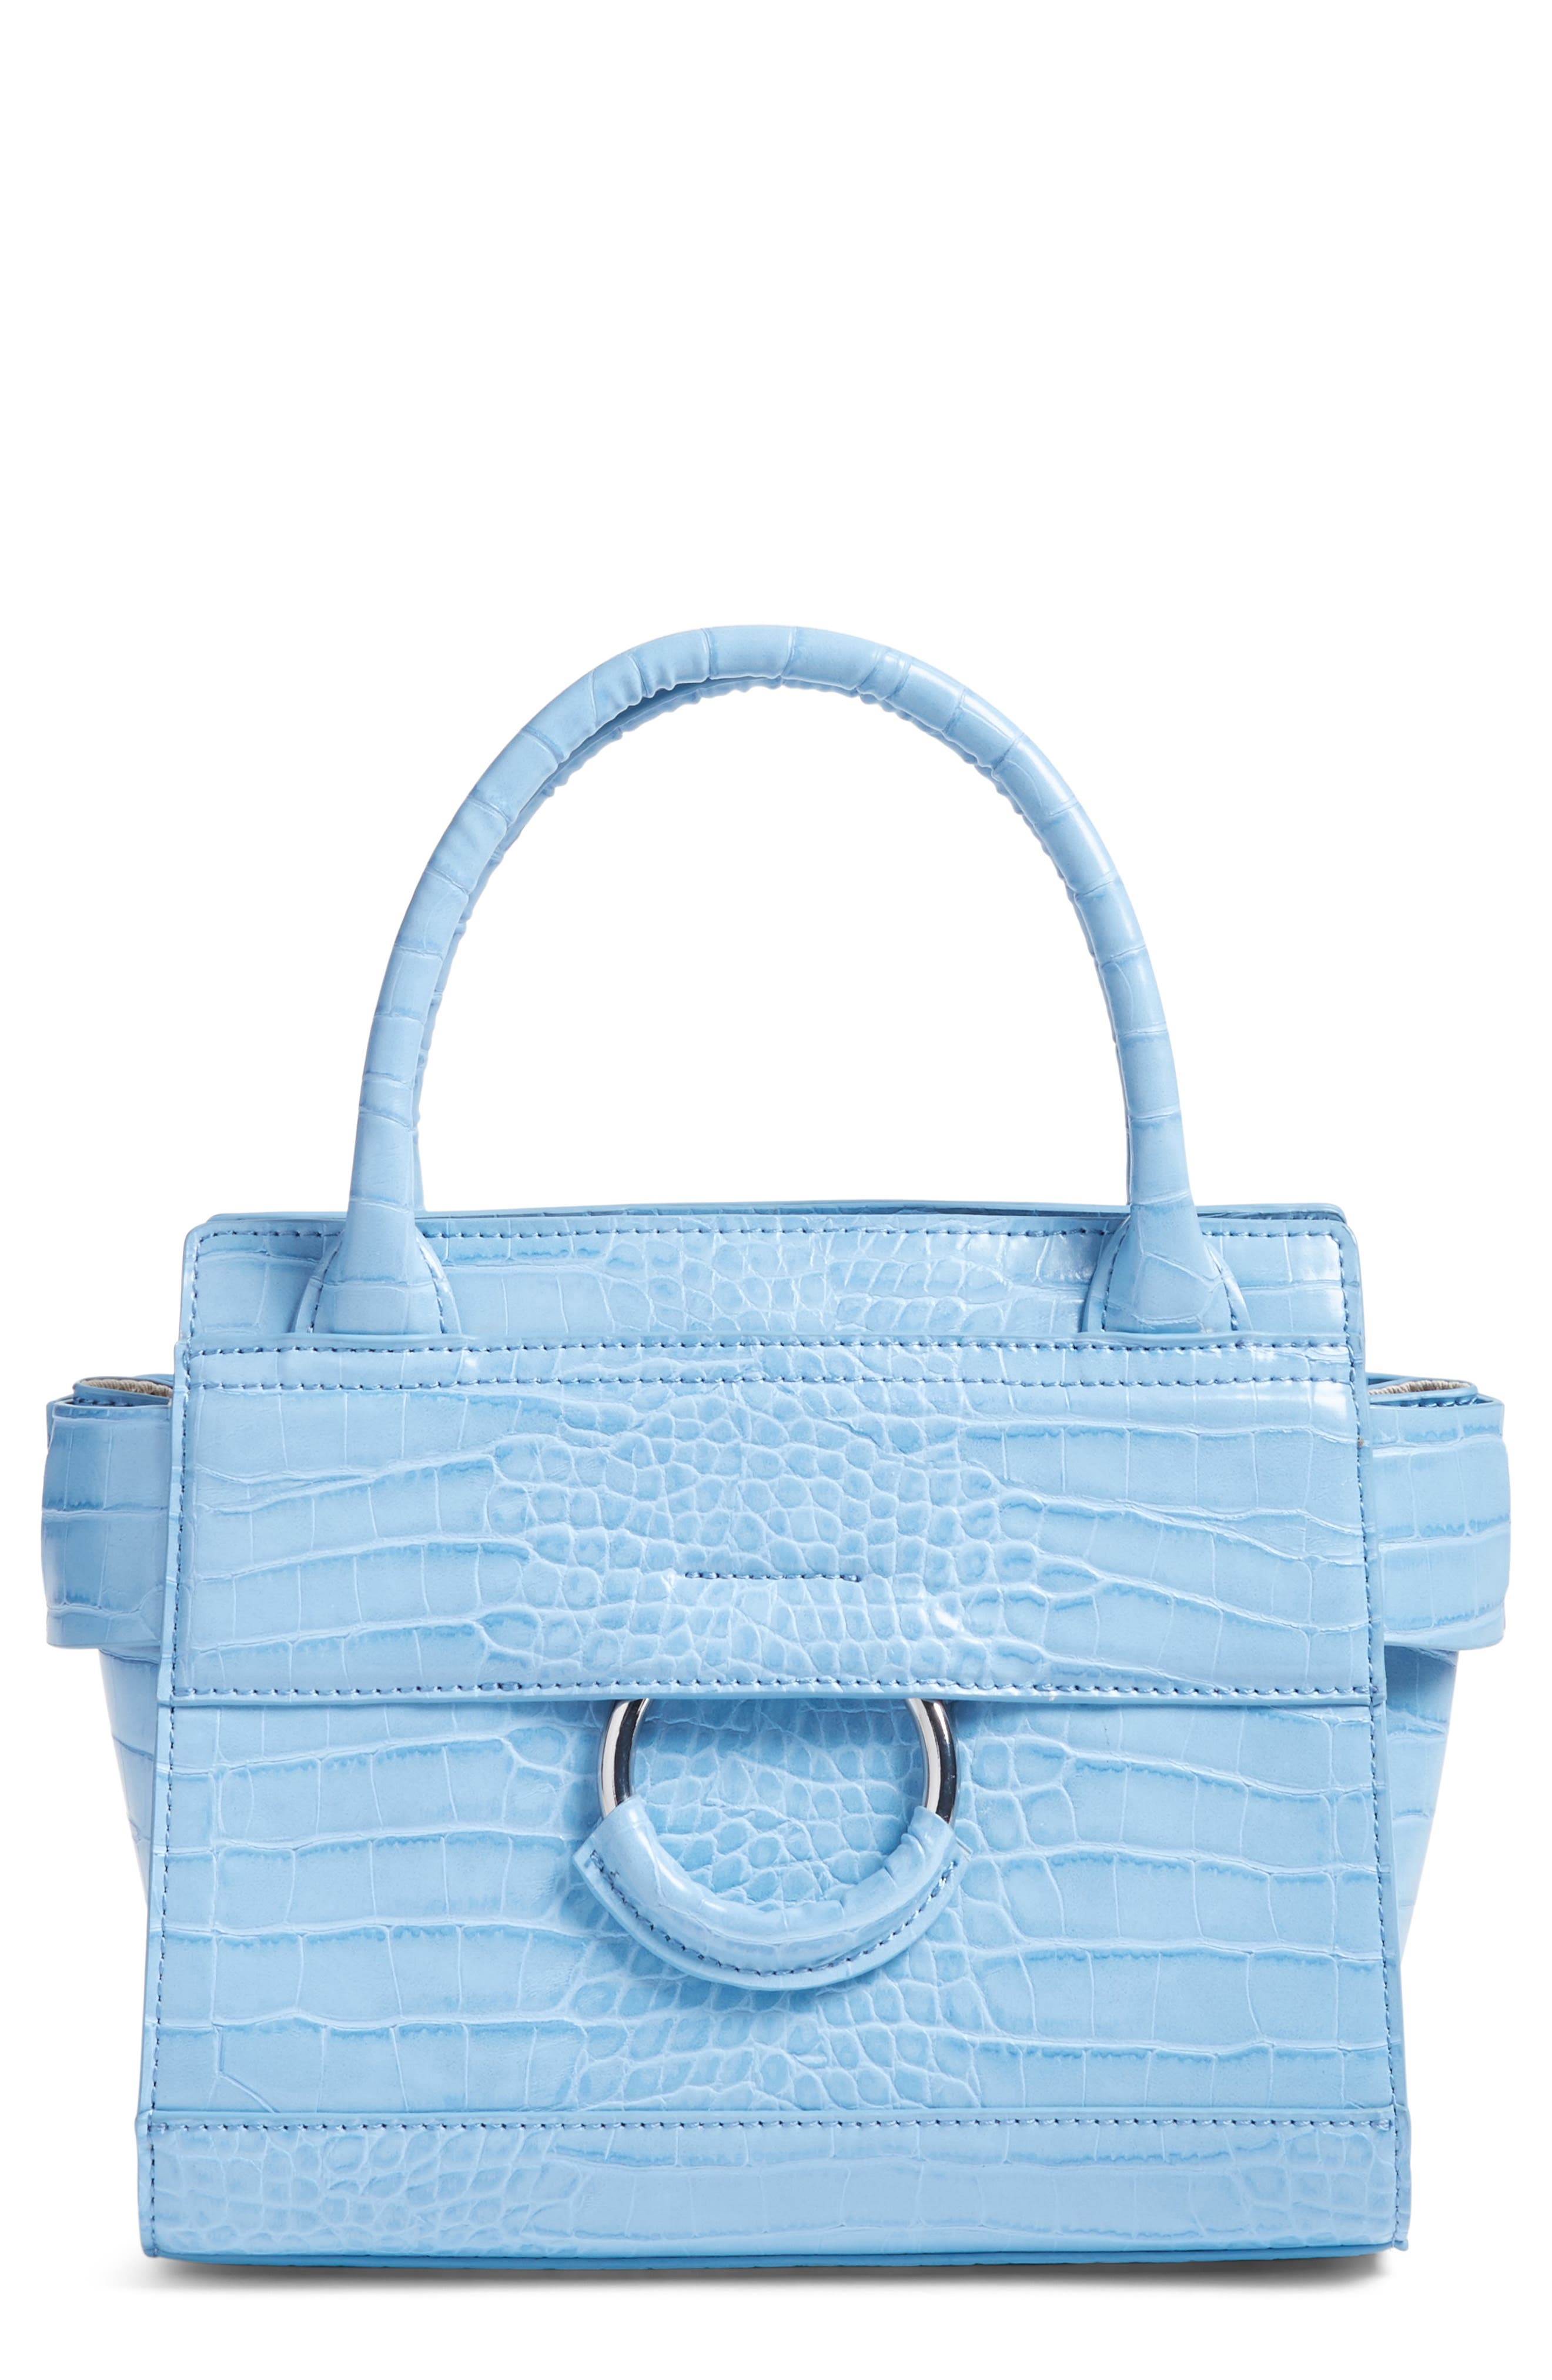 Alternate Image 1 Selected - Sam Edelman Mini Chiara Faux Leather Satchel